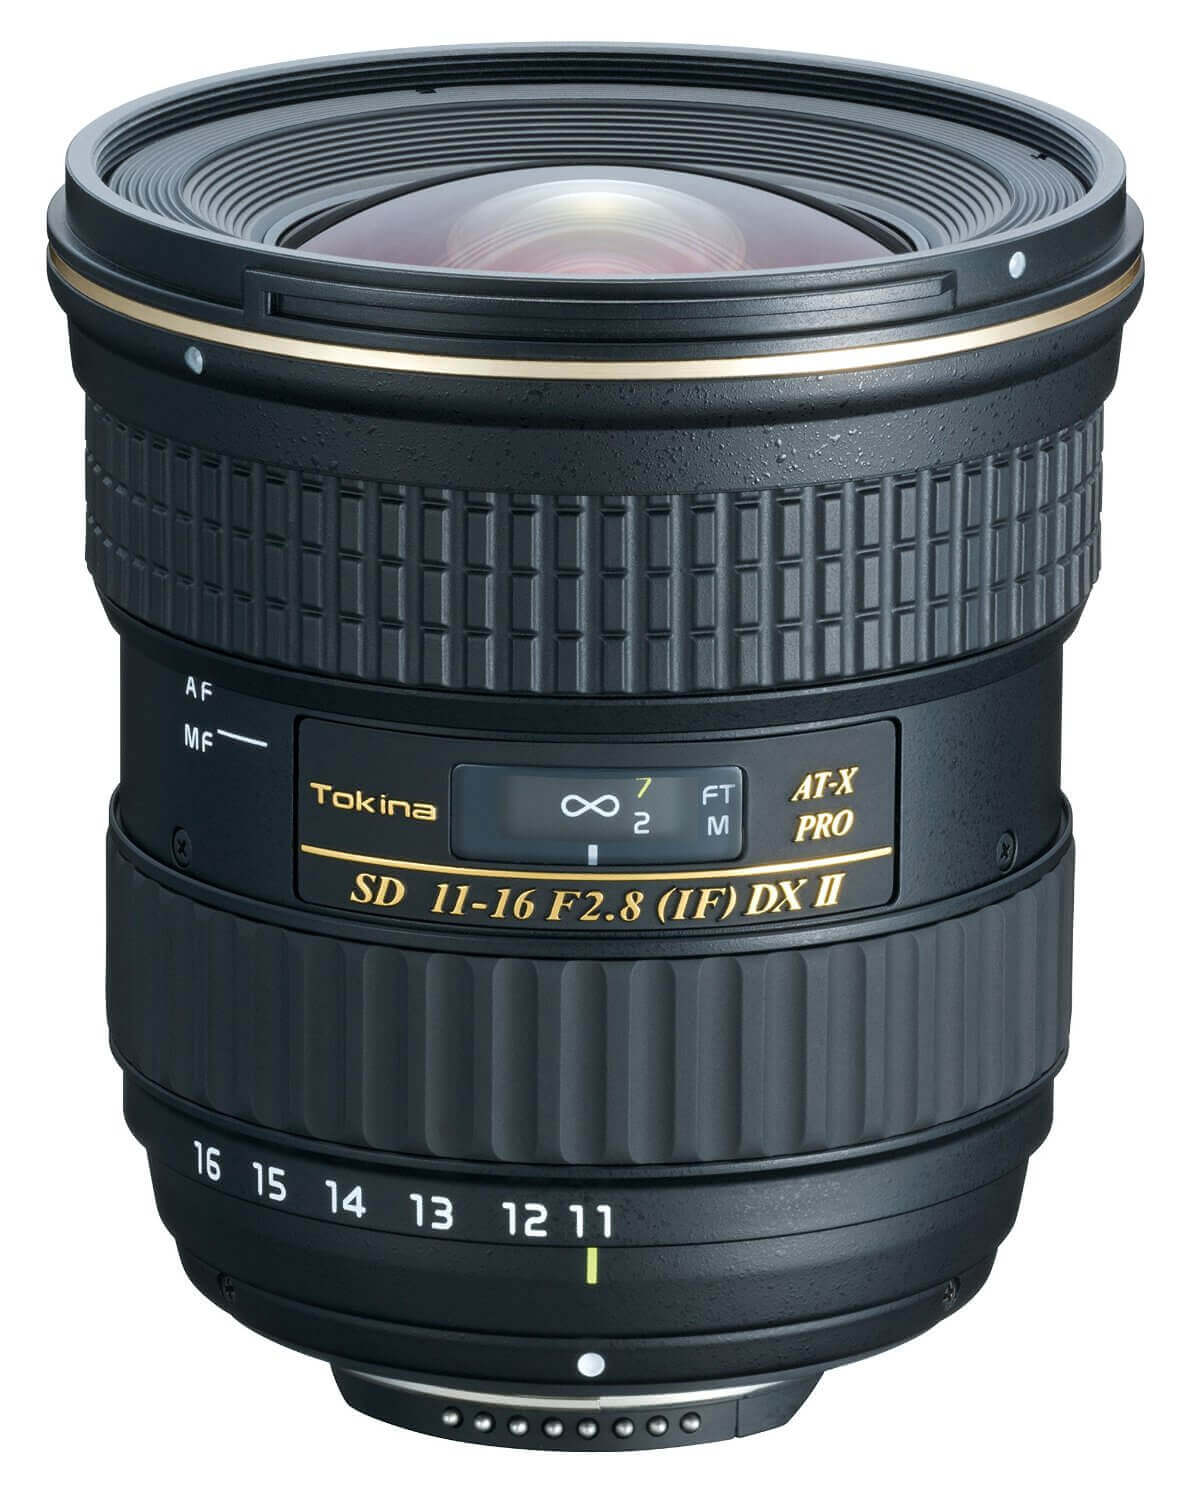 Tokina 11-16mm f2.8 DX II